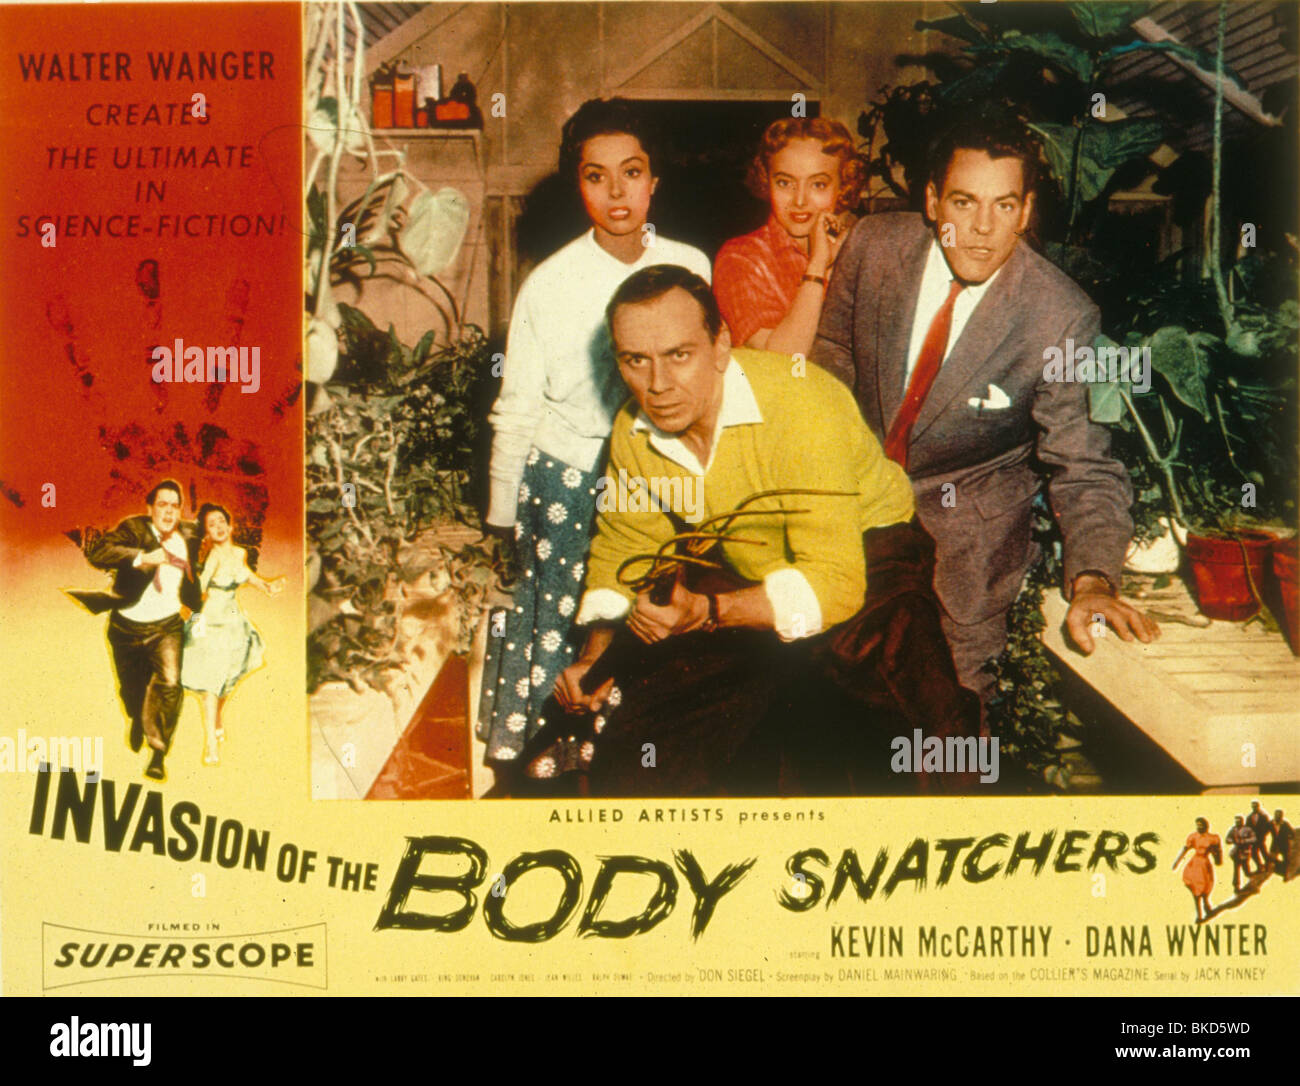 INVASION OF THE BODY SNATCHERS (1956) POSTER IBS 006 - Stock Image